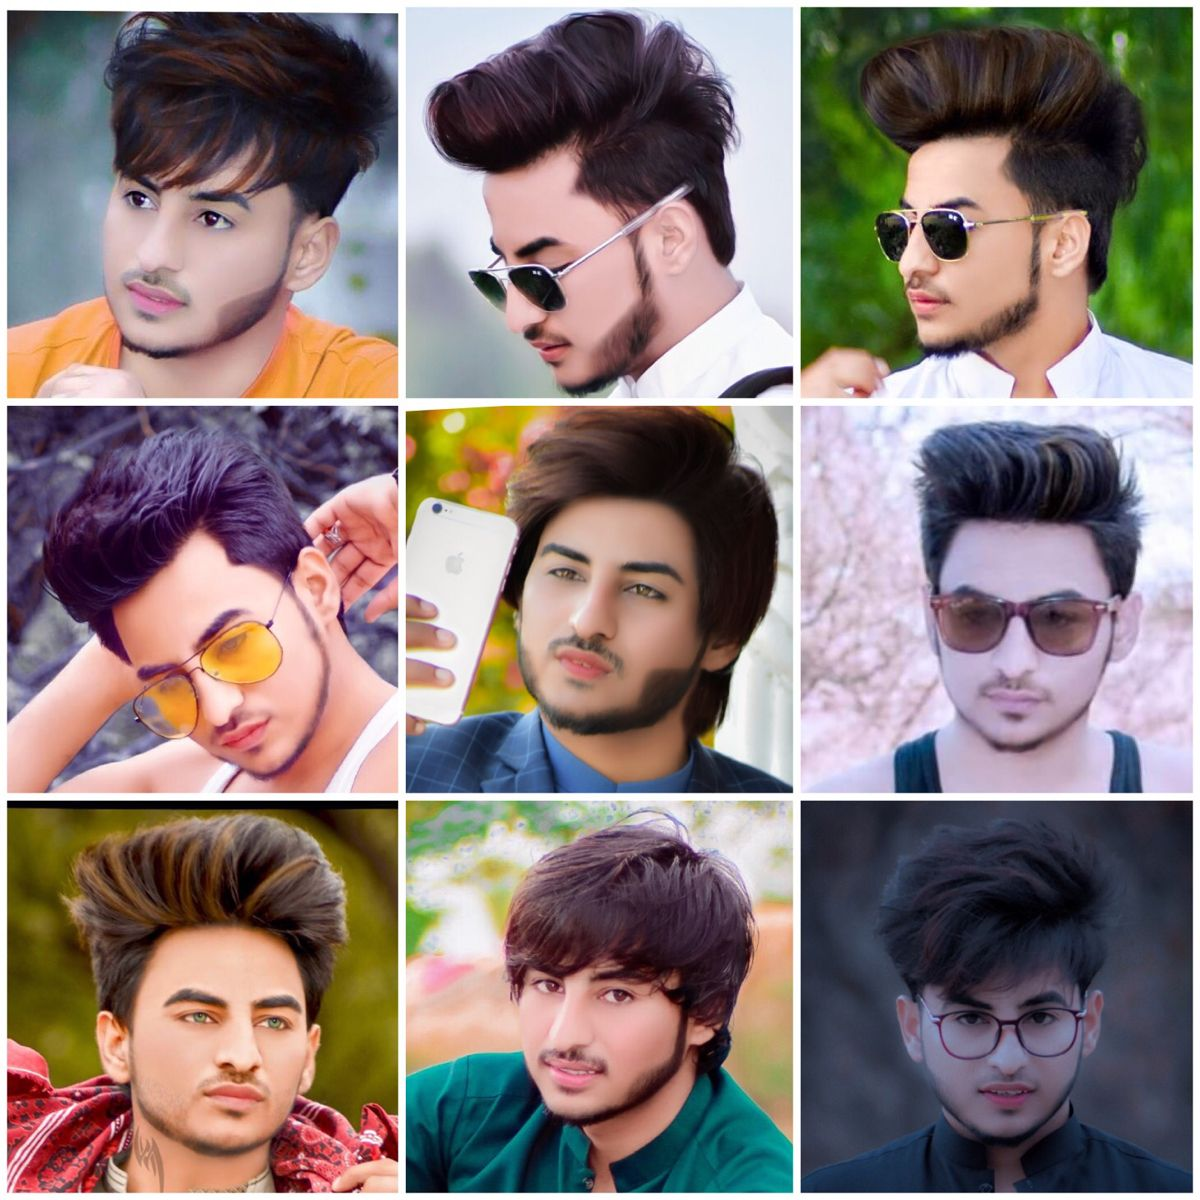 Most Popular Boy Hairstyle 2020 In 2020 Boy Hairstyles Popular Boy Hairstyles New Hair